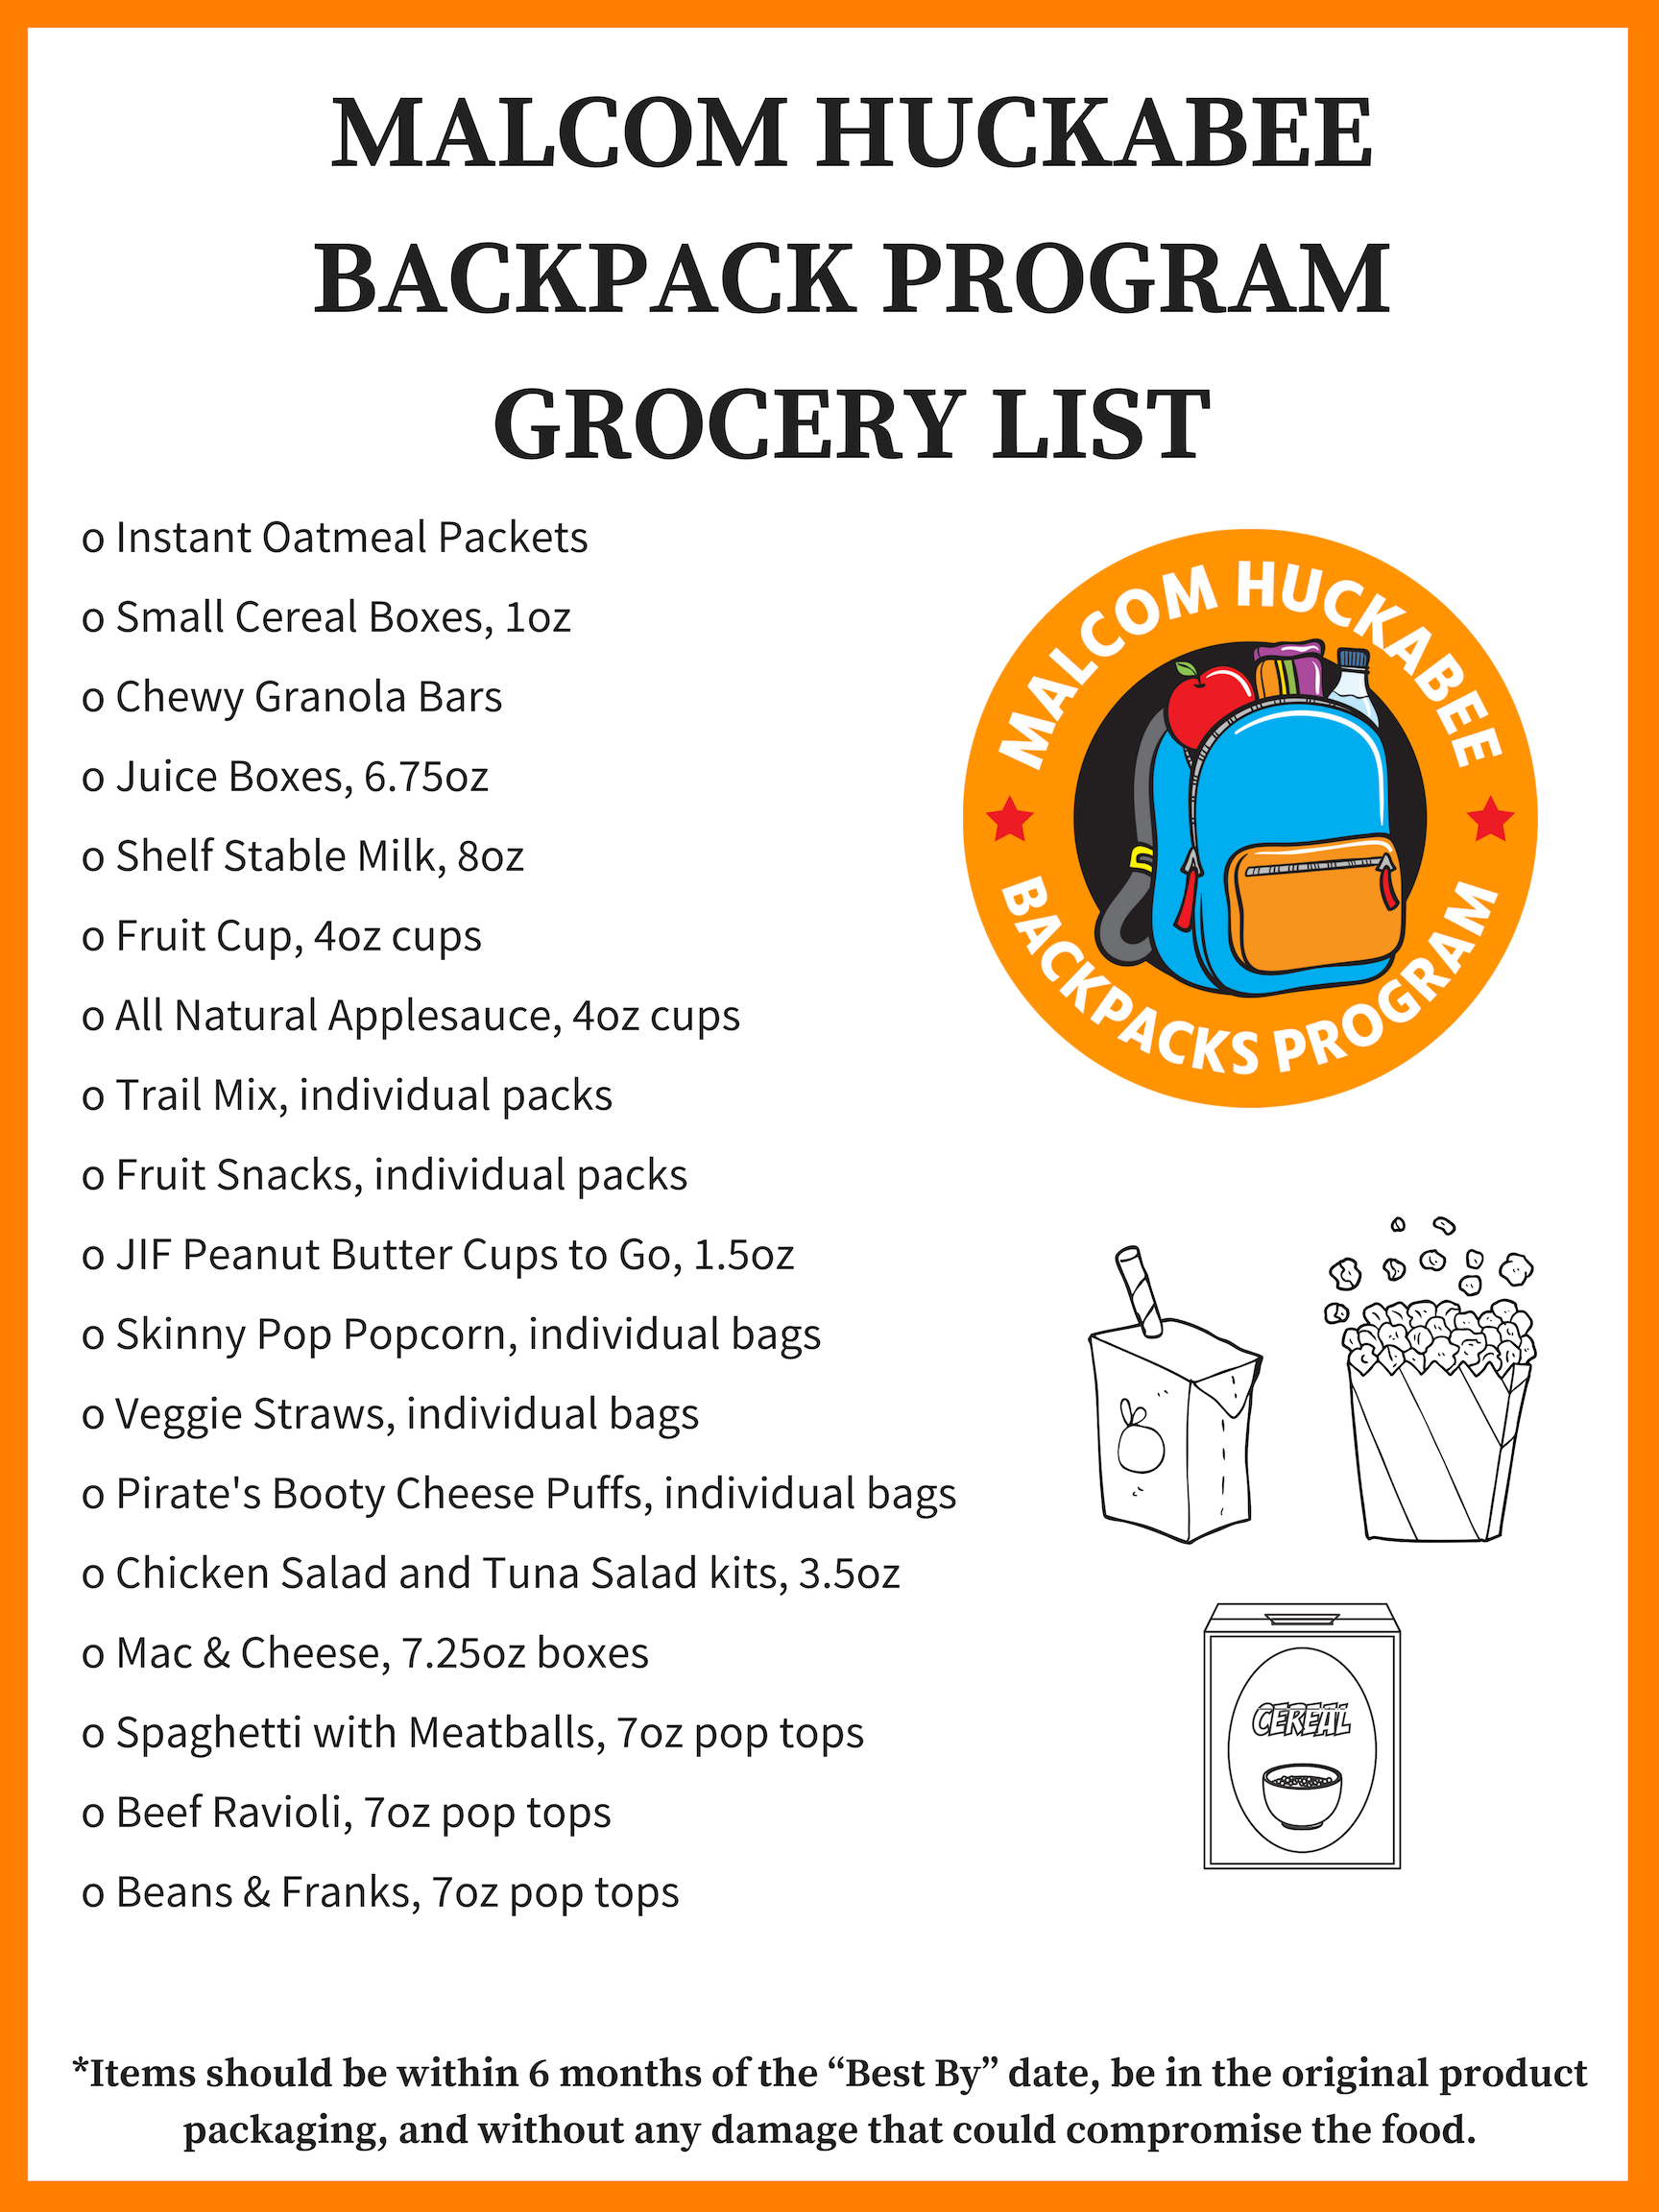 Malcom Huckabee Backpacks Program Grocery List